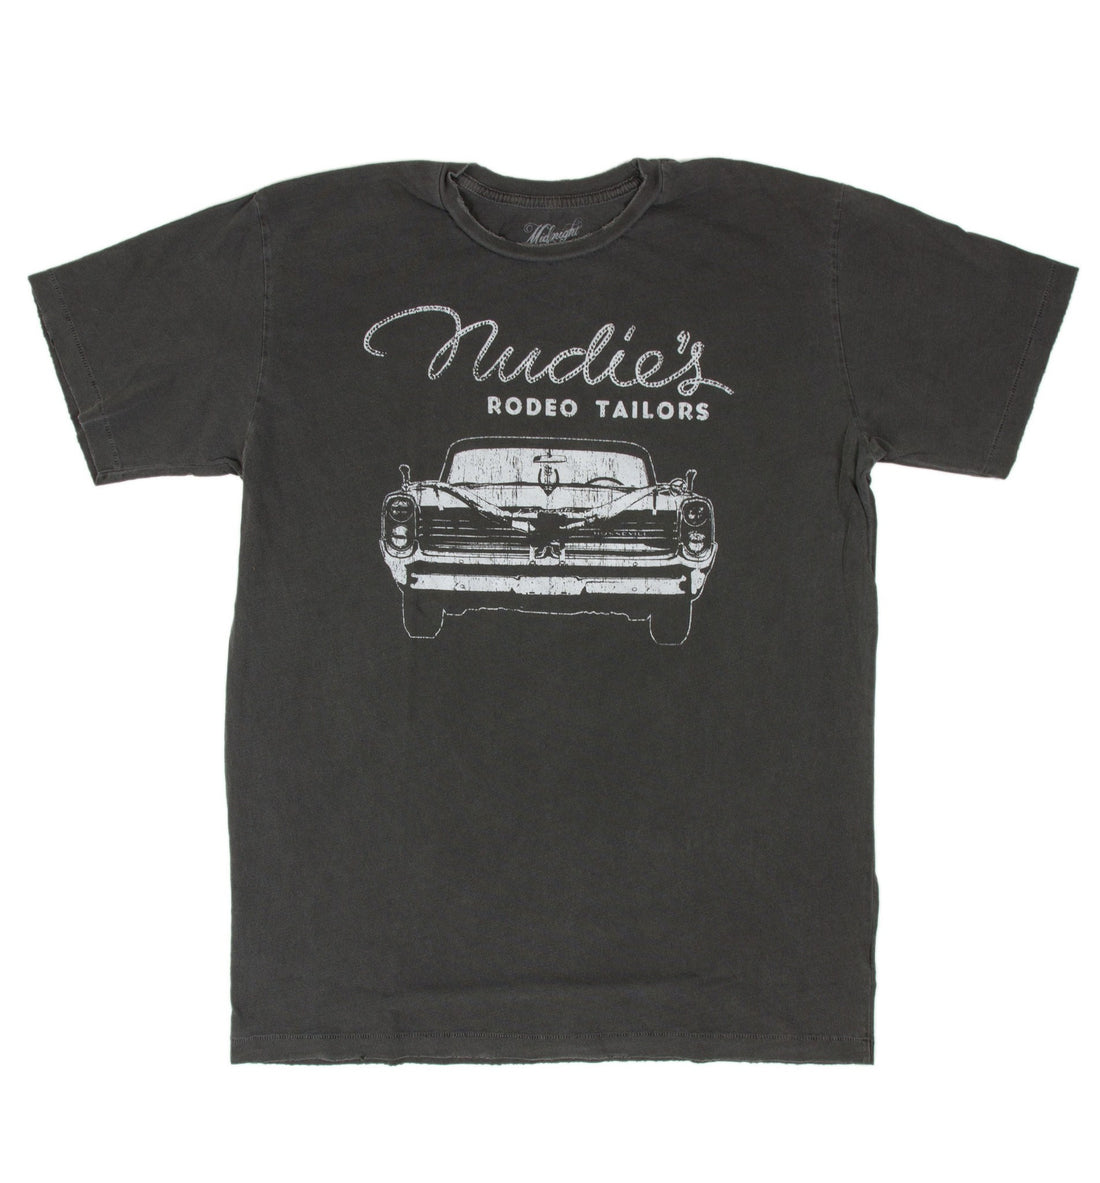 Midnight Rider Nudie Bonneville Men's Crew - Apparel: Men's: T-Shirts - Iron and Resin